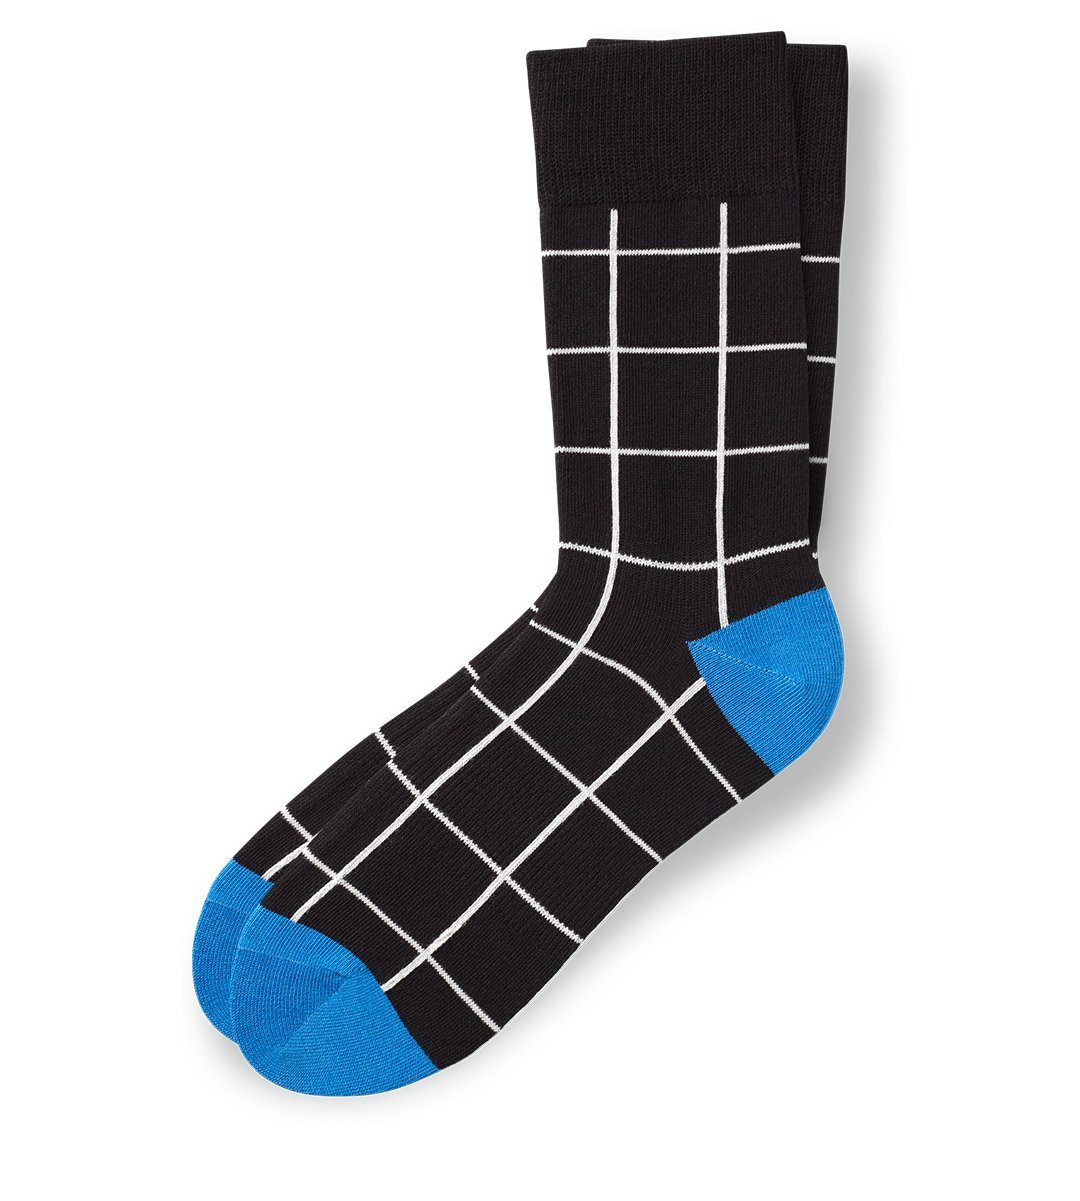 The Grid Men's Crew Socks